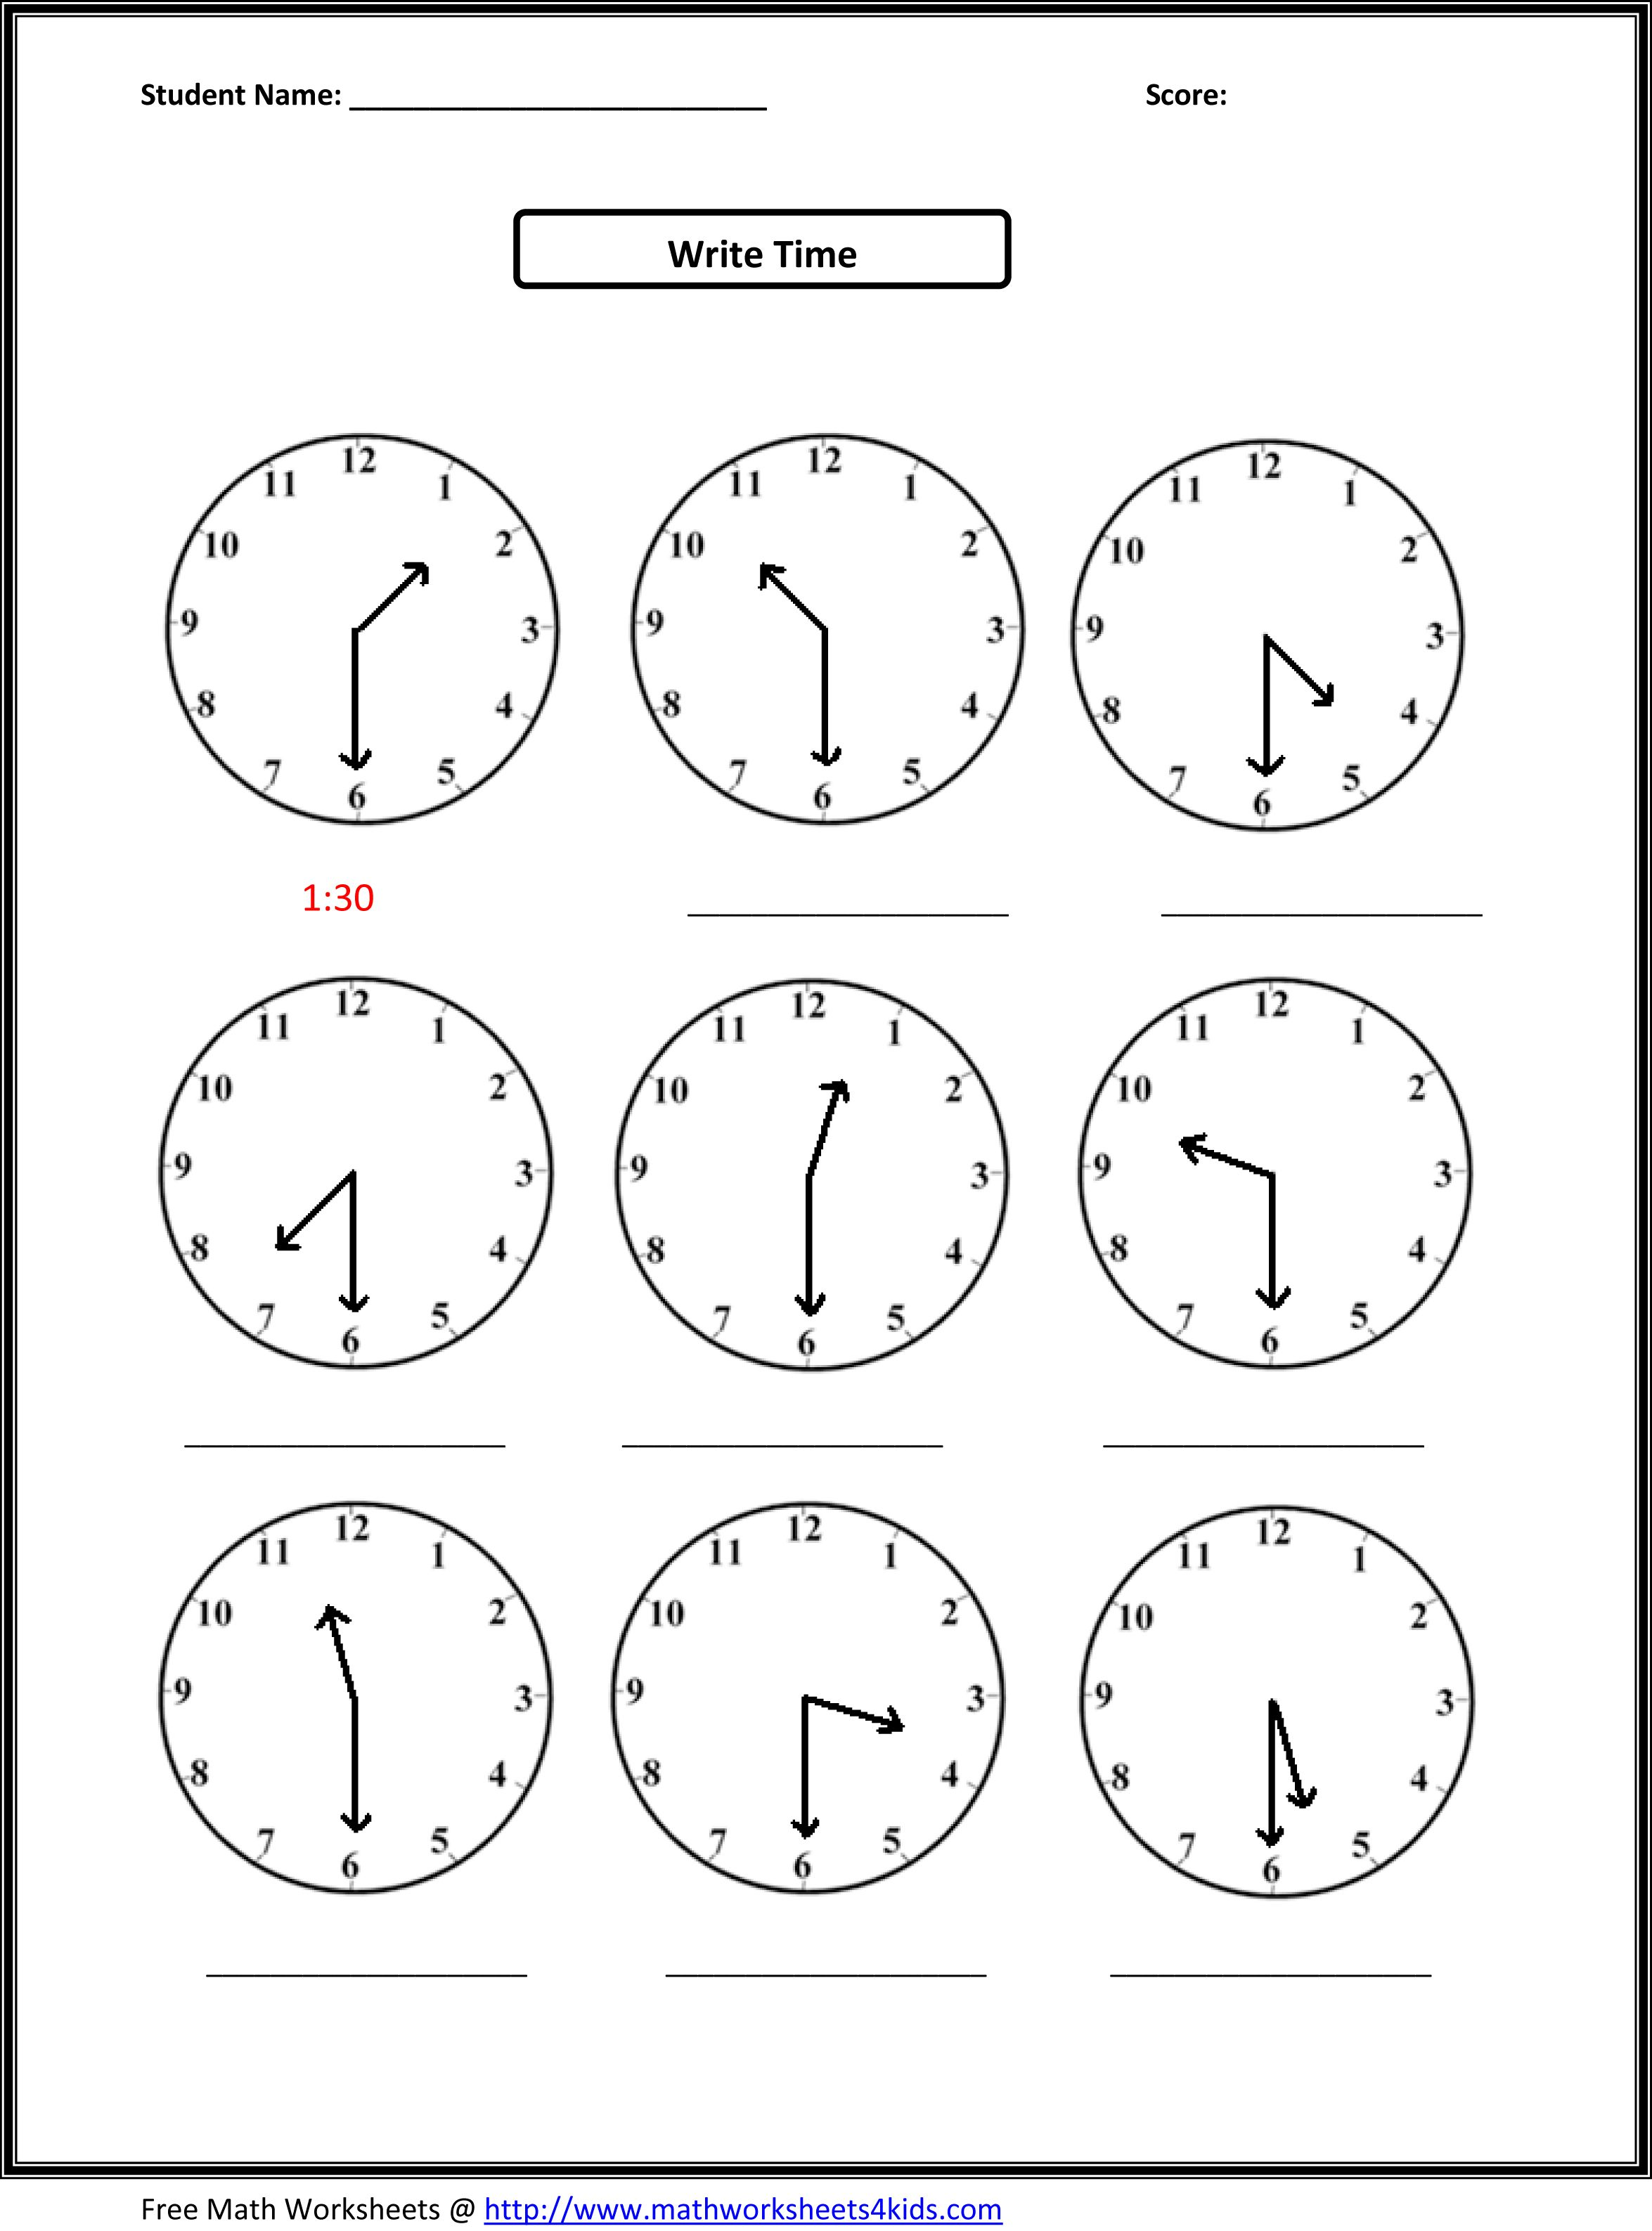 Proatmealus  Picturesque Worksheet On Time For Grade   Reocurent With Goodlooking Free Printable Telling Time Worksheets Nd Grade  Reocurent With Charming Finding Area And Perimeter Worksheets Also Solving Quadratic Inequalities Algebraically Worksheet In Addition Classification Of Animals Worksheet And Common Core Math Worksheets For Rd Grade As Well As Th Math Worksheets Additionally Angles Of Depression And Elevation Worksheet From Reocurentcom With Proatmealus  Goodlooking Worksheet On Time For Grade   Reocurent With Charming Free Printable Telling Time Worksheets Nd Grade  Reocurent And Picturesque Finding Area And Perimeter Worksheets Also Solving Quadratic Inequalities Algebraically Worksheet In Addition Classification Of Animals Worksheet From Reocurentcom